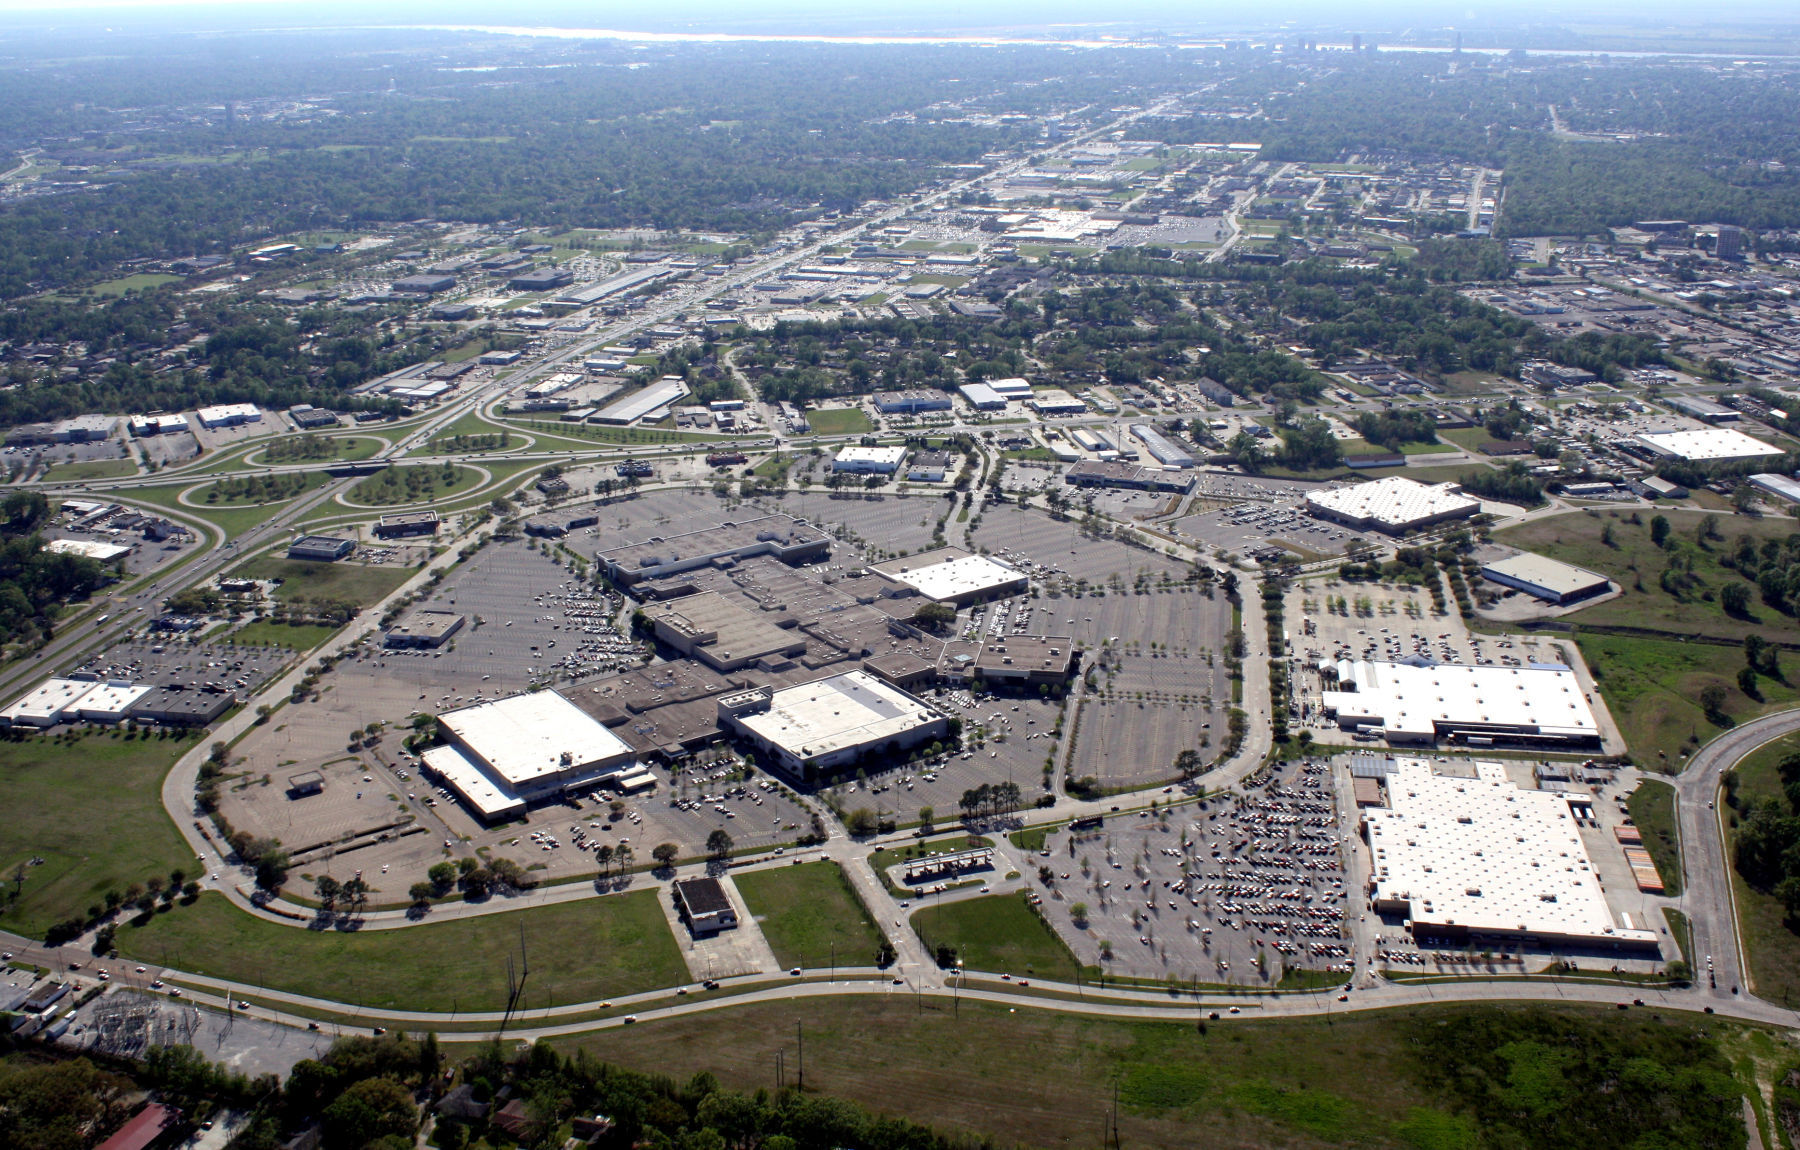 Mall Of Louisiana Inside Map%0A Baton Rouge u    s Cortana Mall  interior stores hit market with   M price tag